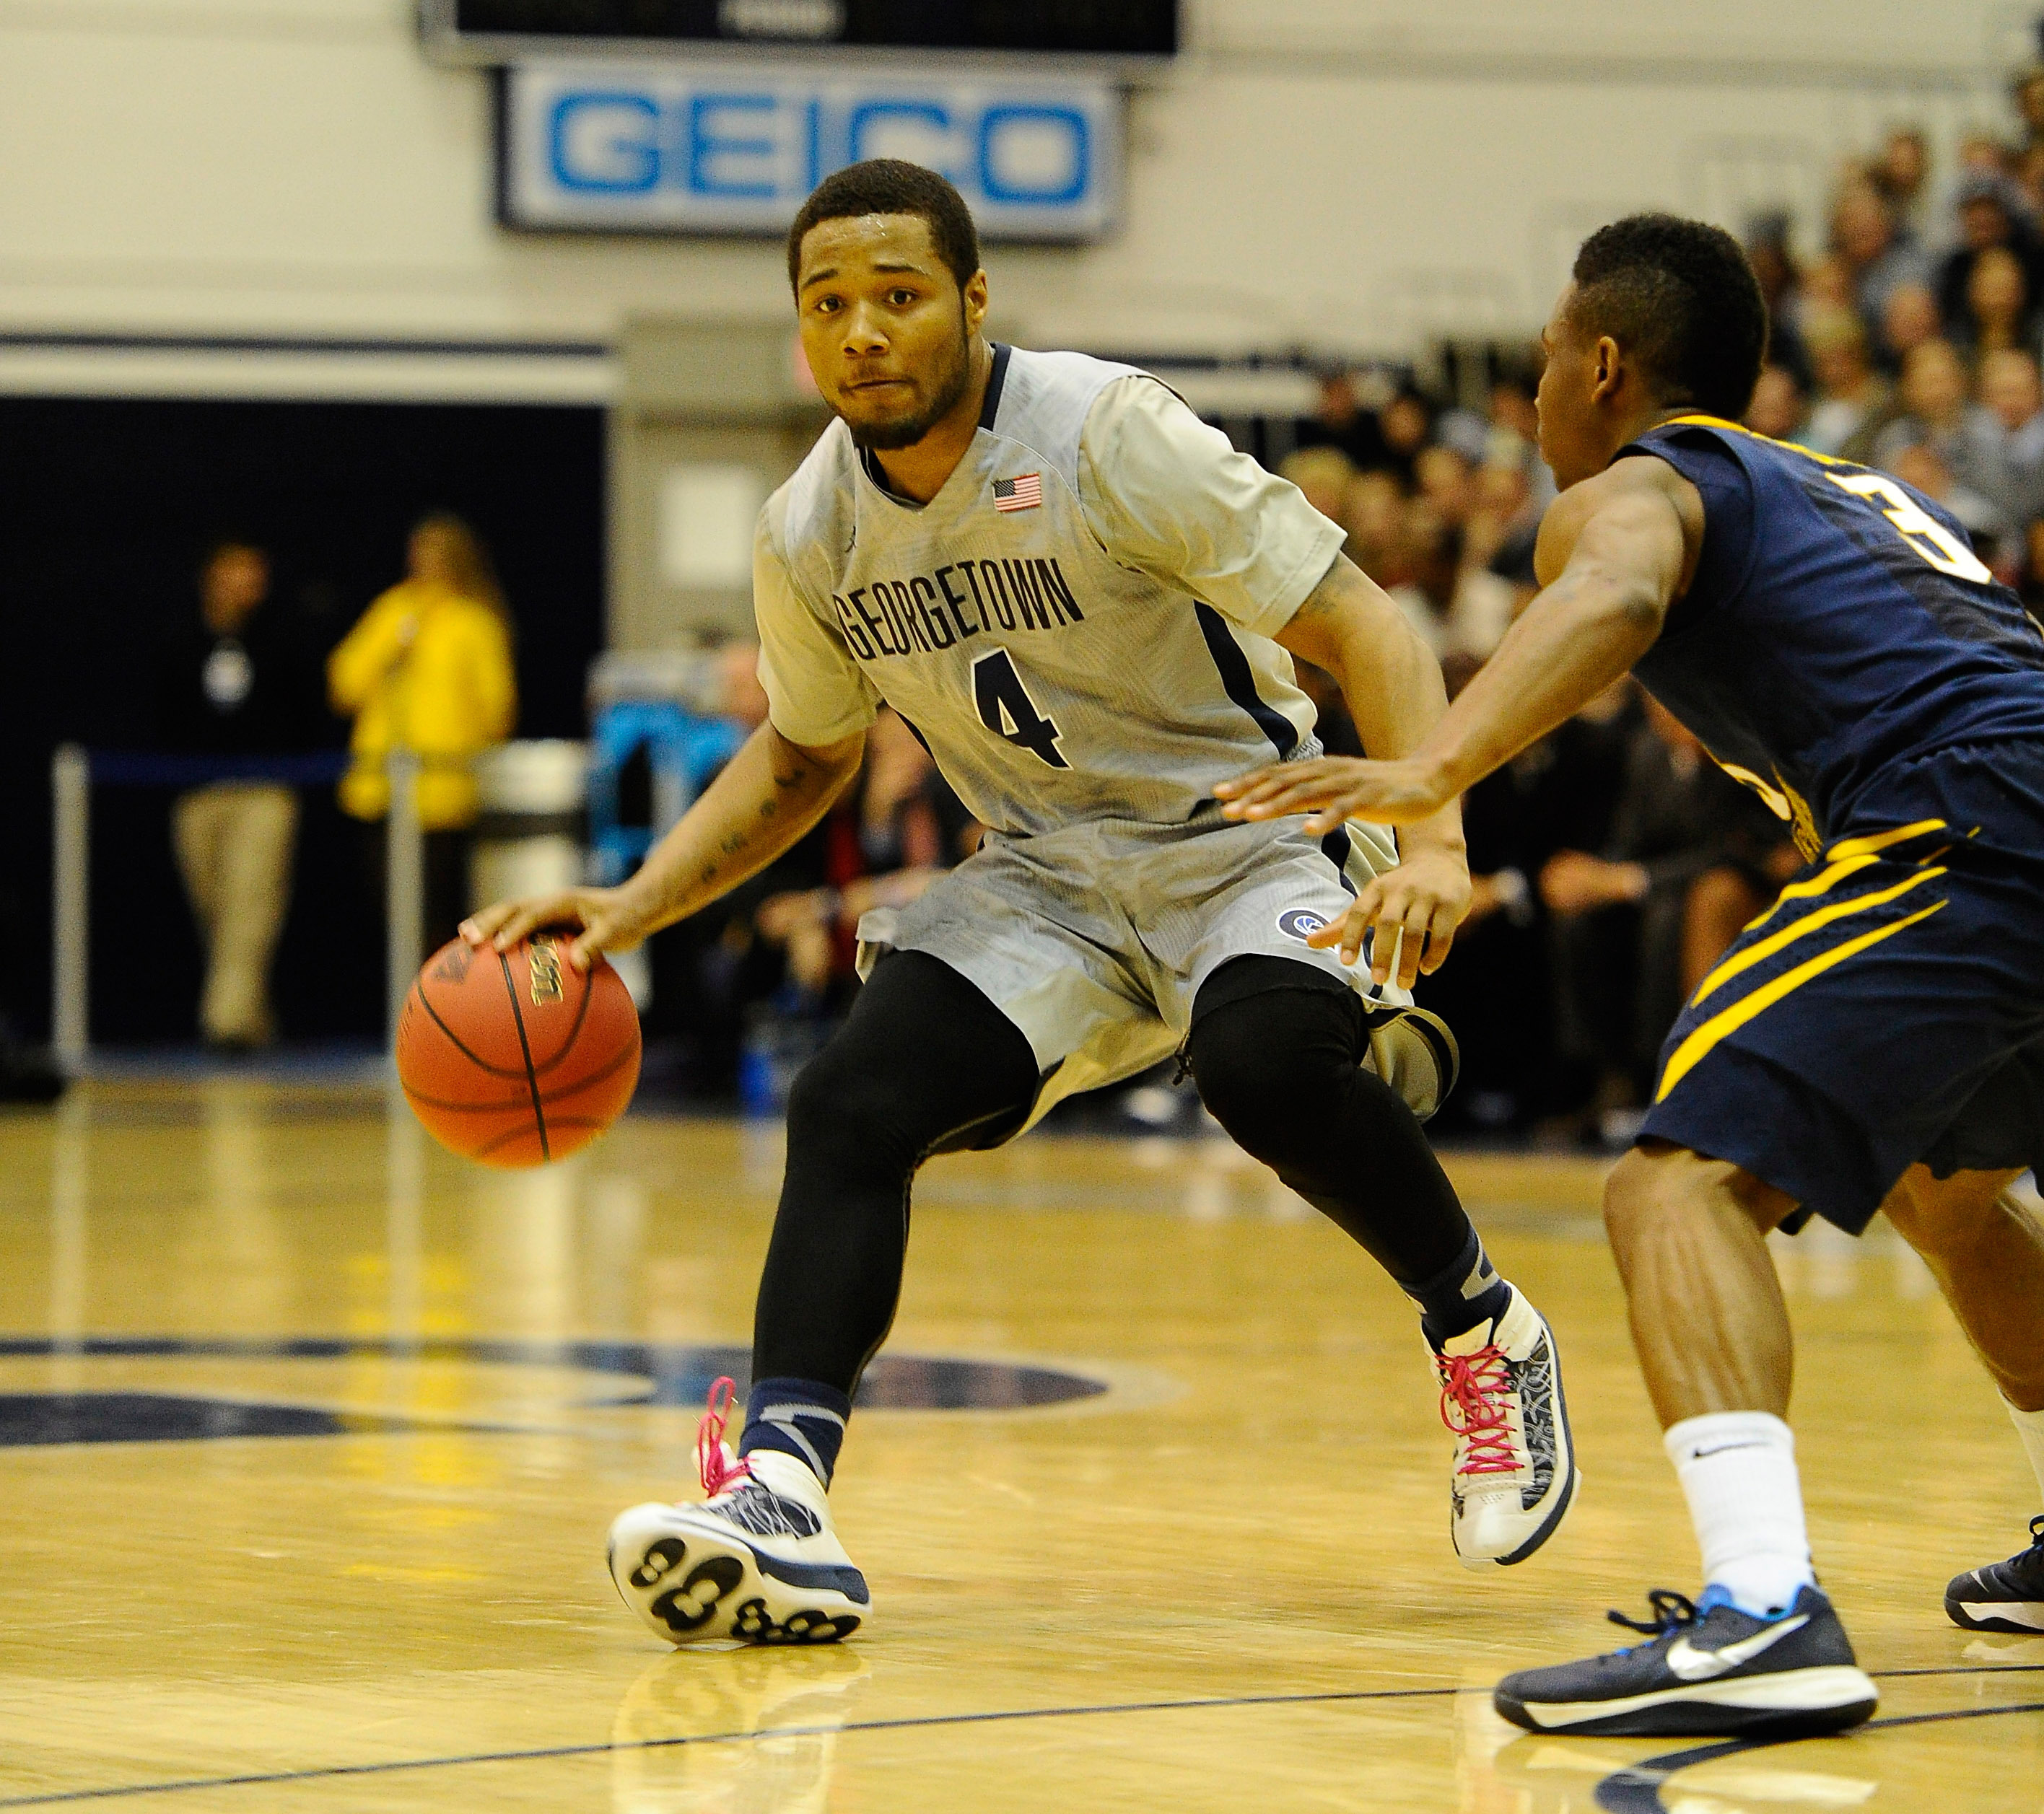 Junior guard D'Vauntes Smith-Rivera was selected as the BIG EAST Preseason Player of the Year and the Hoyas were picked to finish second in the BIG EAST.